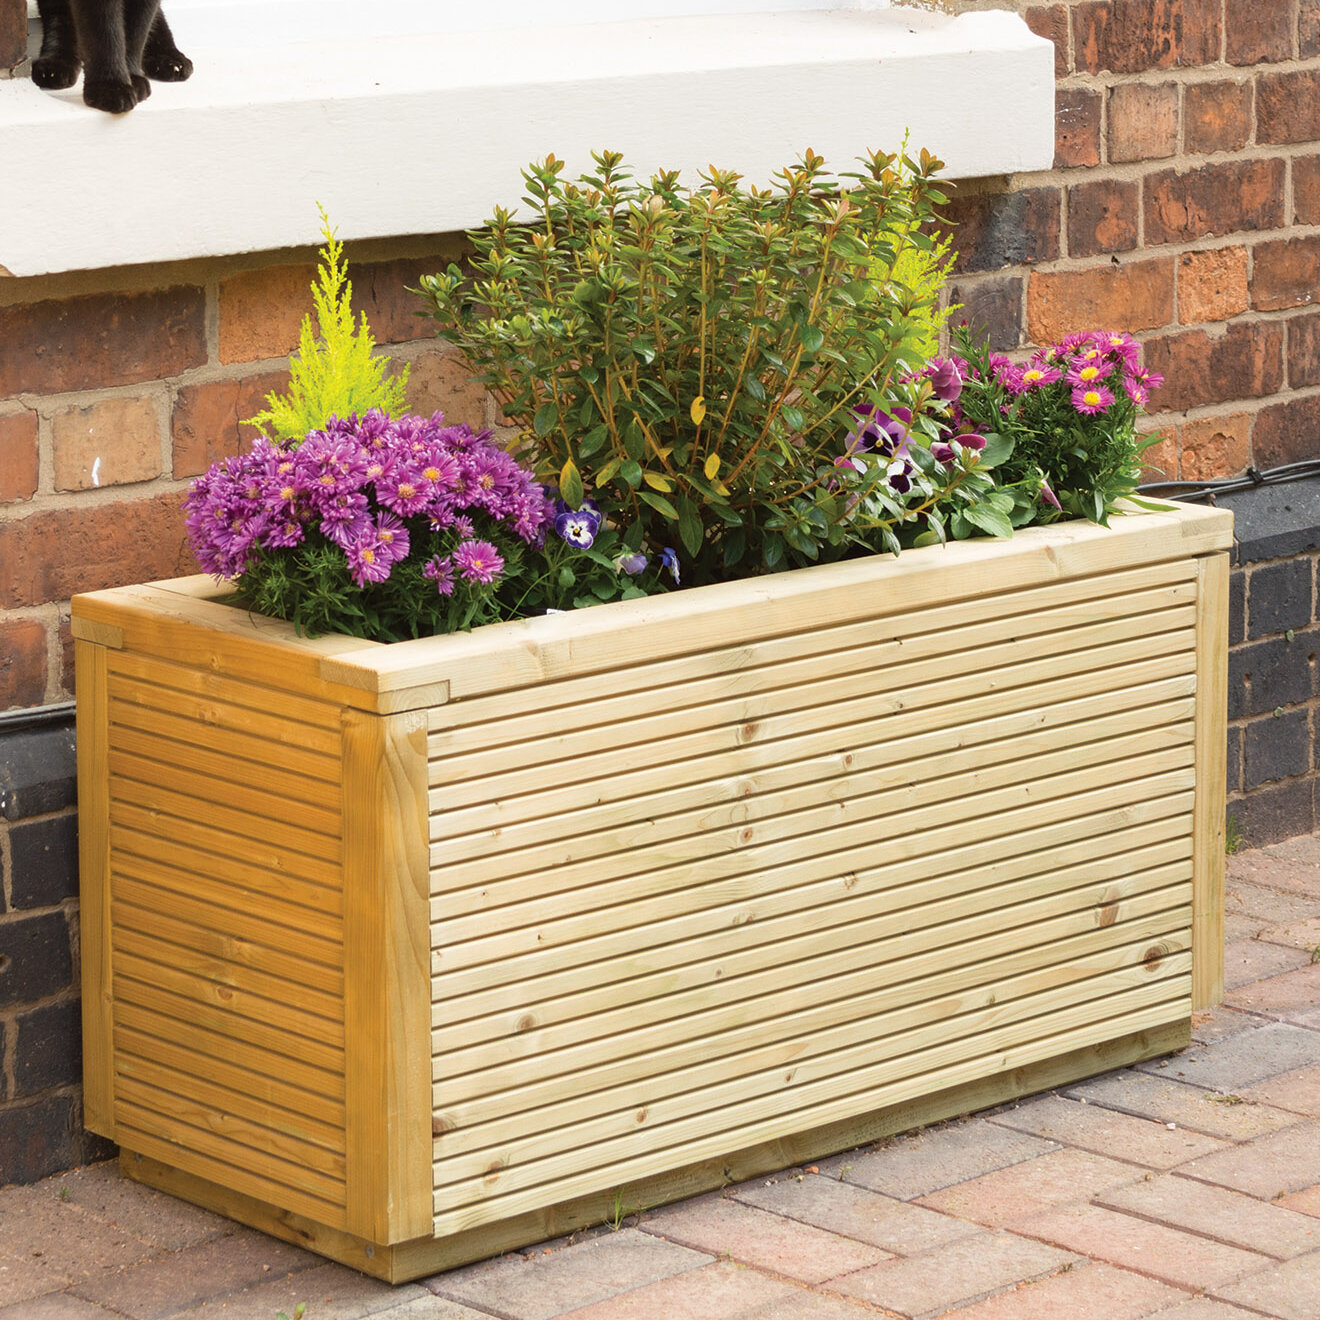 Gracie Oaks Wegman Wood Planter Box | Wayfair